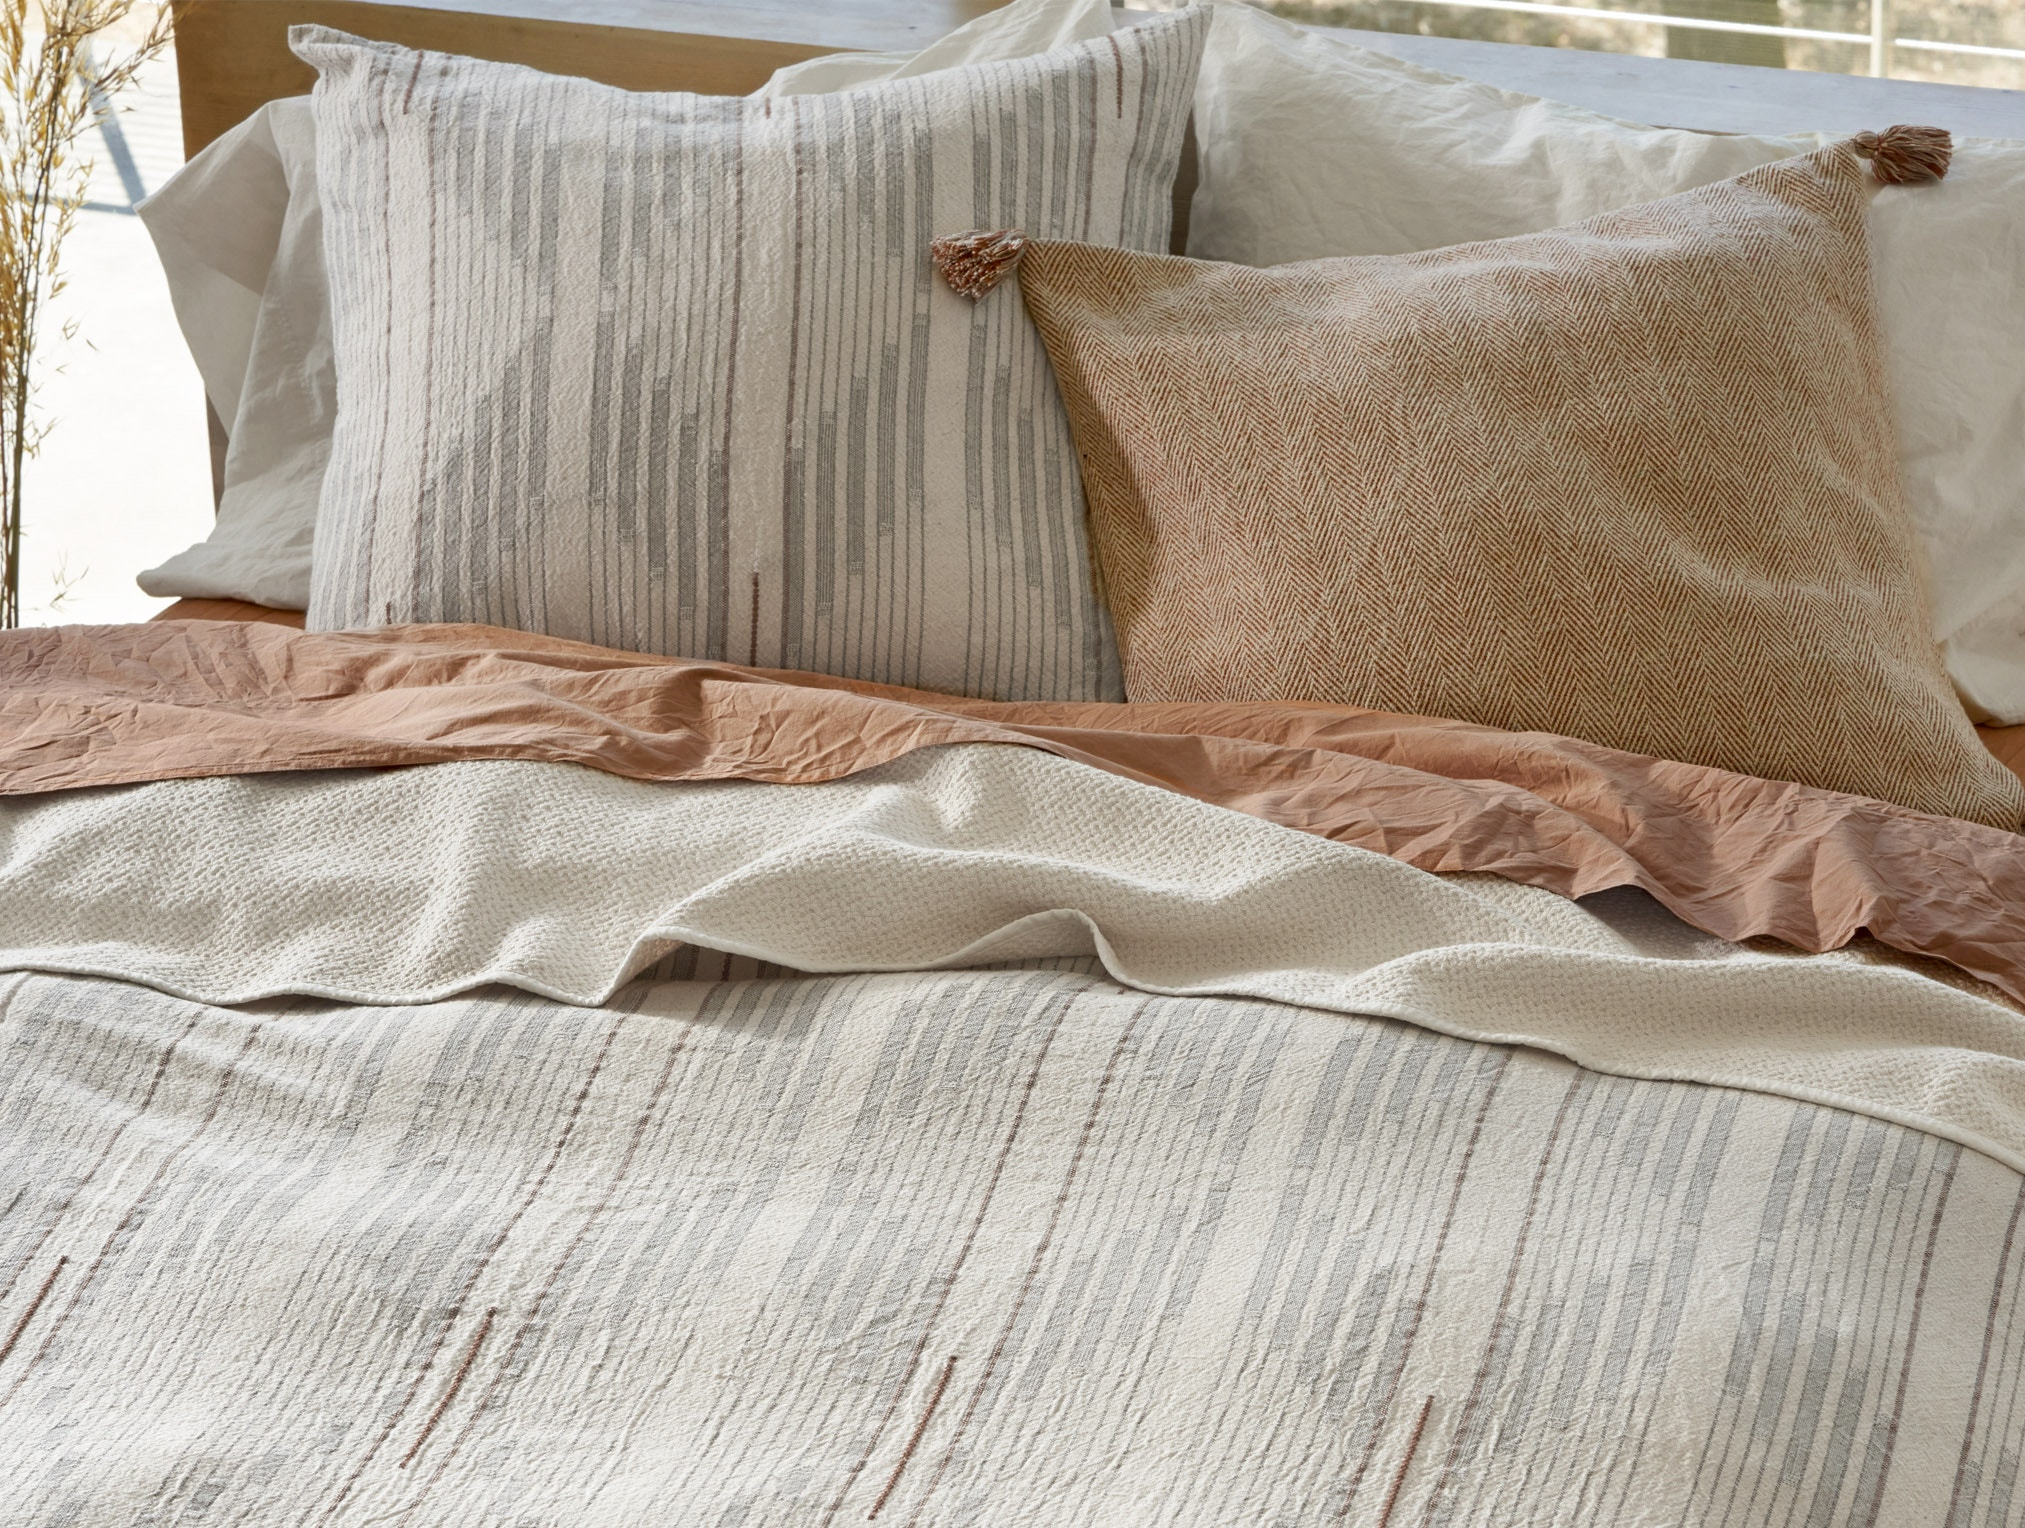 Detail of Morelia Organic Duvet Cover